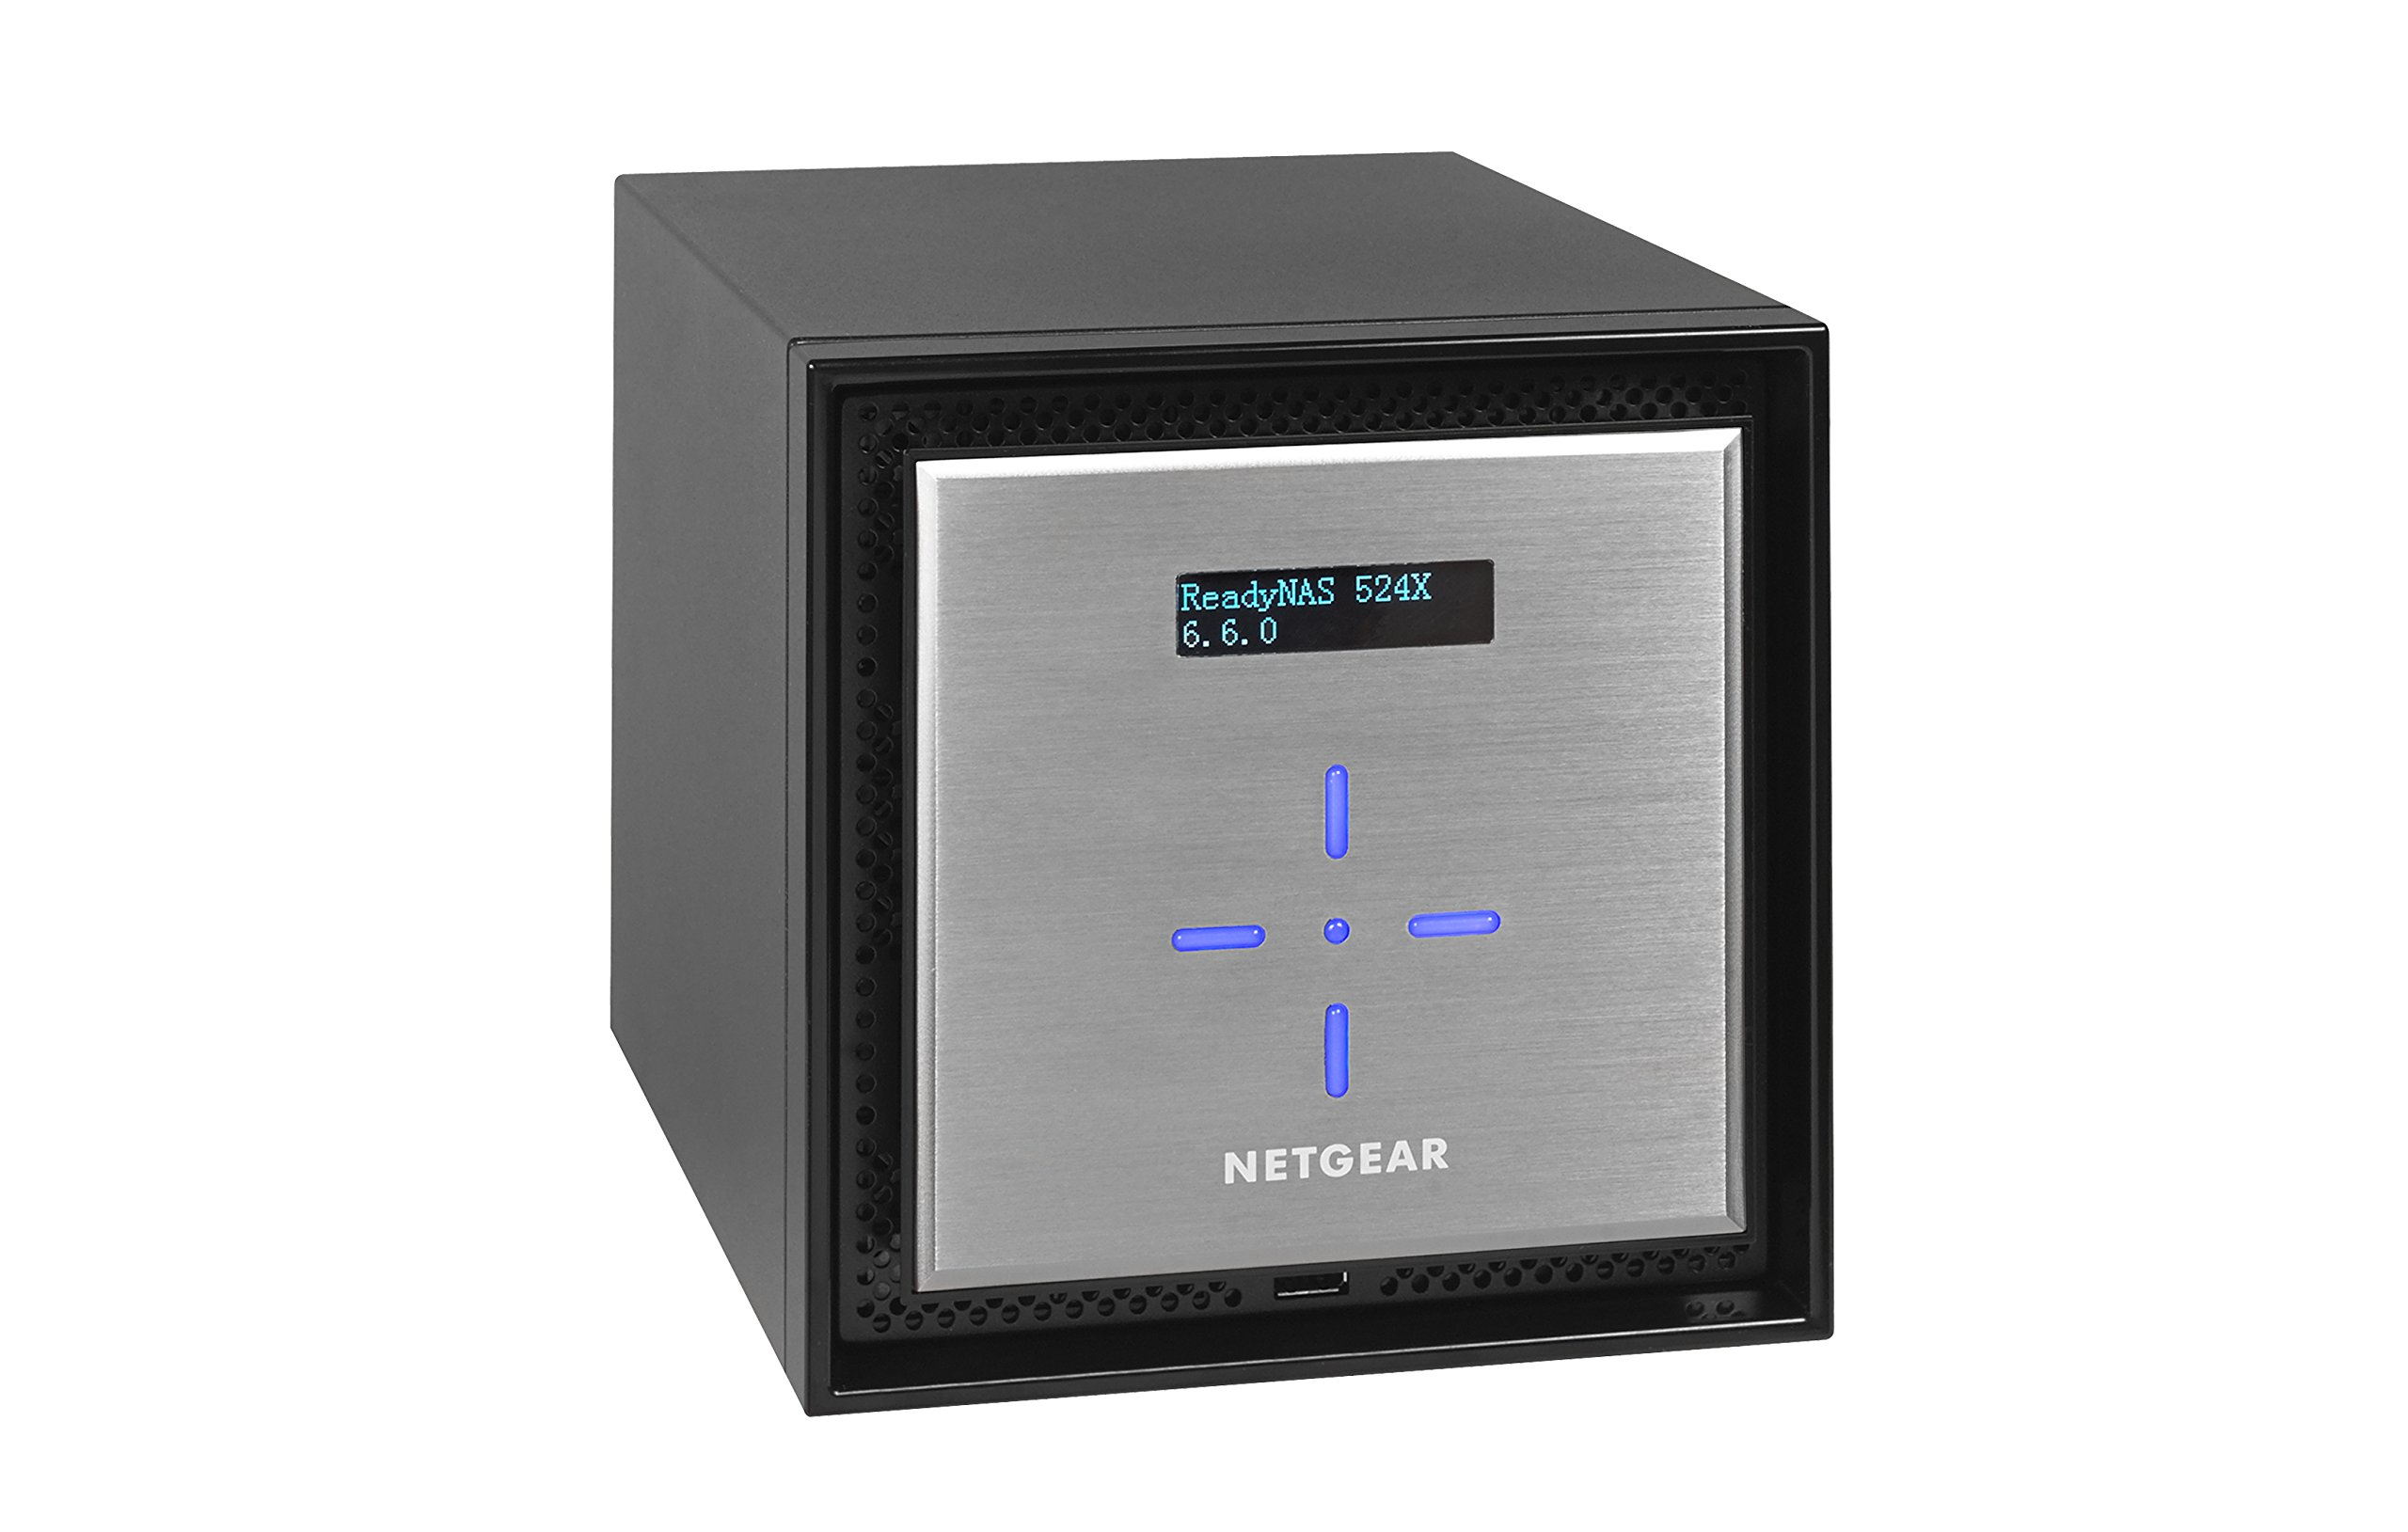 NETGEAR ReadyNAS RN524X00 4 Bay Diskless Premium Performance NAS, 40TB Capacity Network Attached Storage, Intel 2.2GHz Dual Core Processor, 4GB RAM 3 PREMIUM PERFORMANCE - Up to 20 gigabit per second data access, powered by a server processor 10G CONNECTIVITY - Utilize your 10G infrastructure for fast data sharing and backup throughput HIGH-PERFORMANCE - Get 2x faster business application processing with the latest 64-bit technology